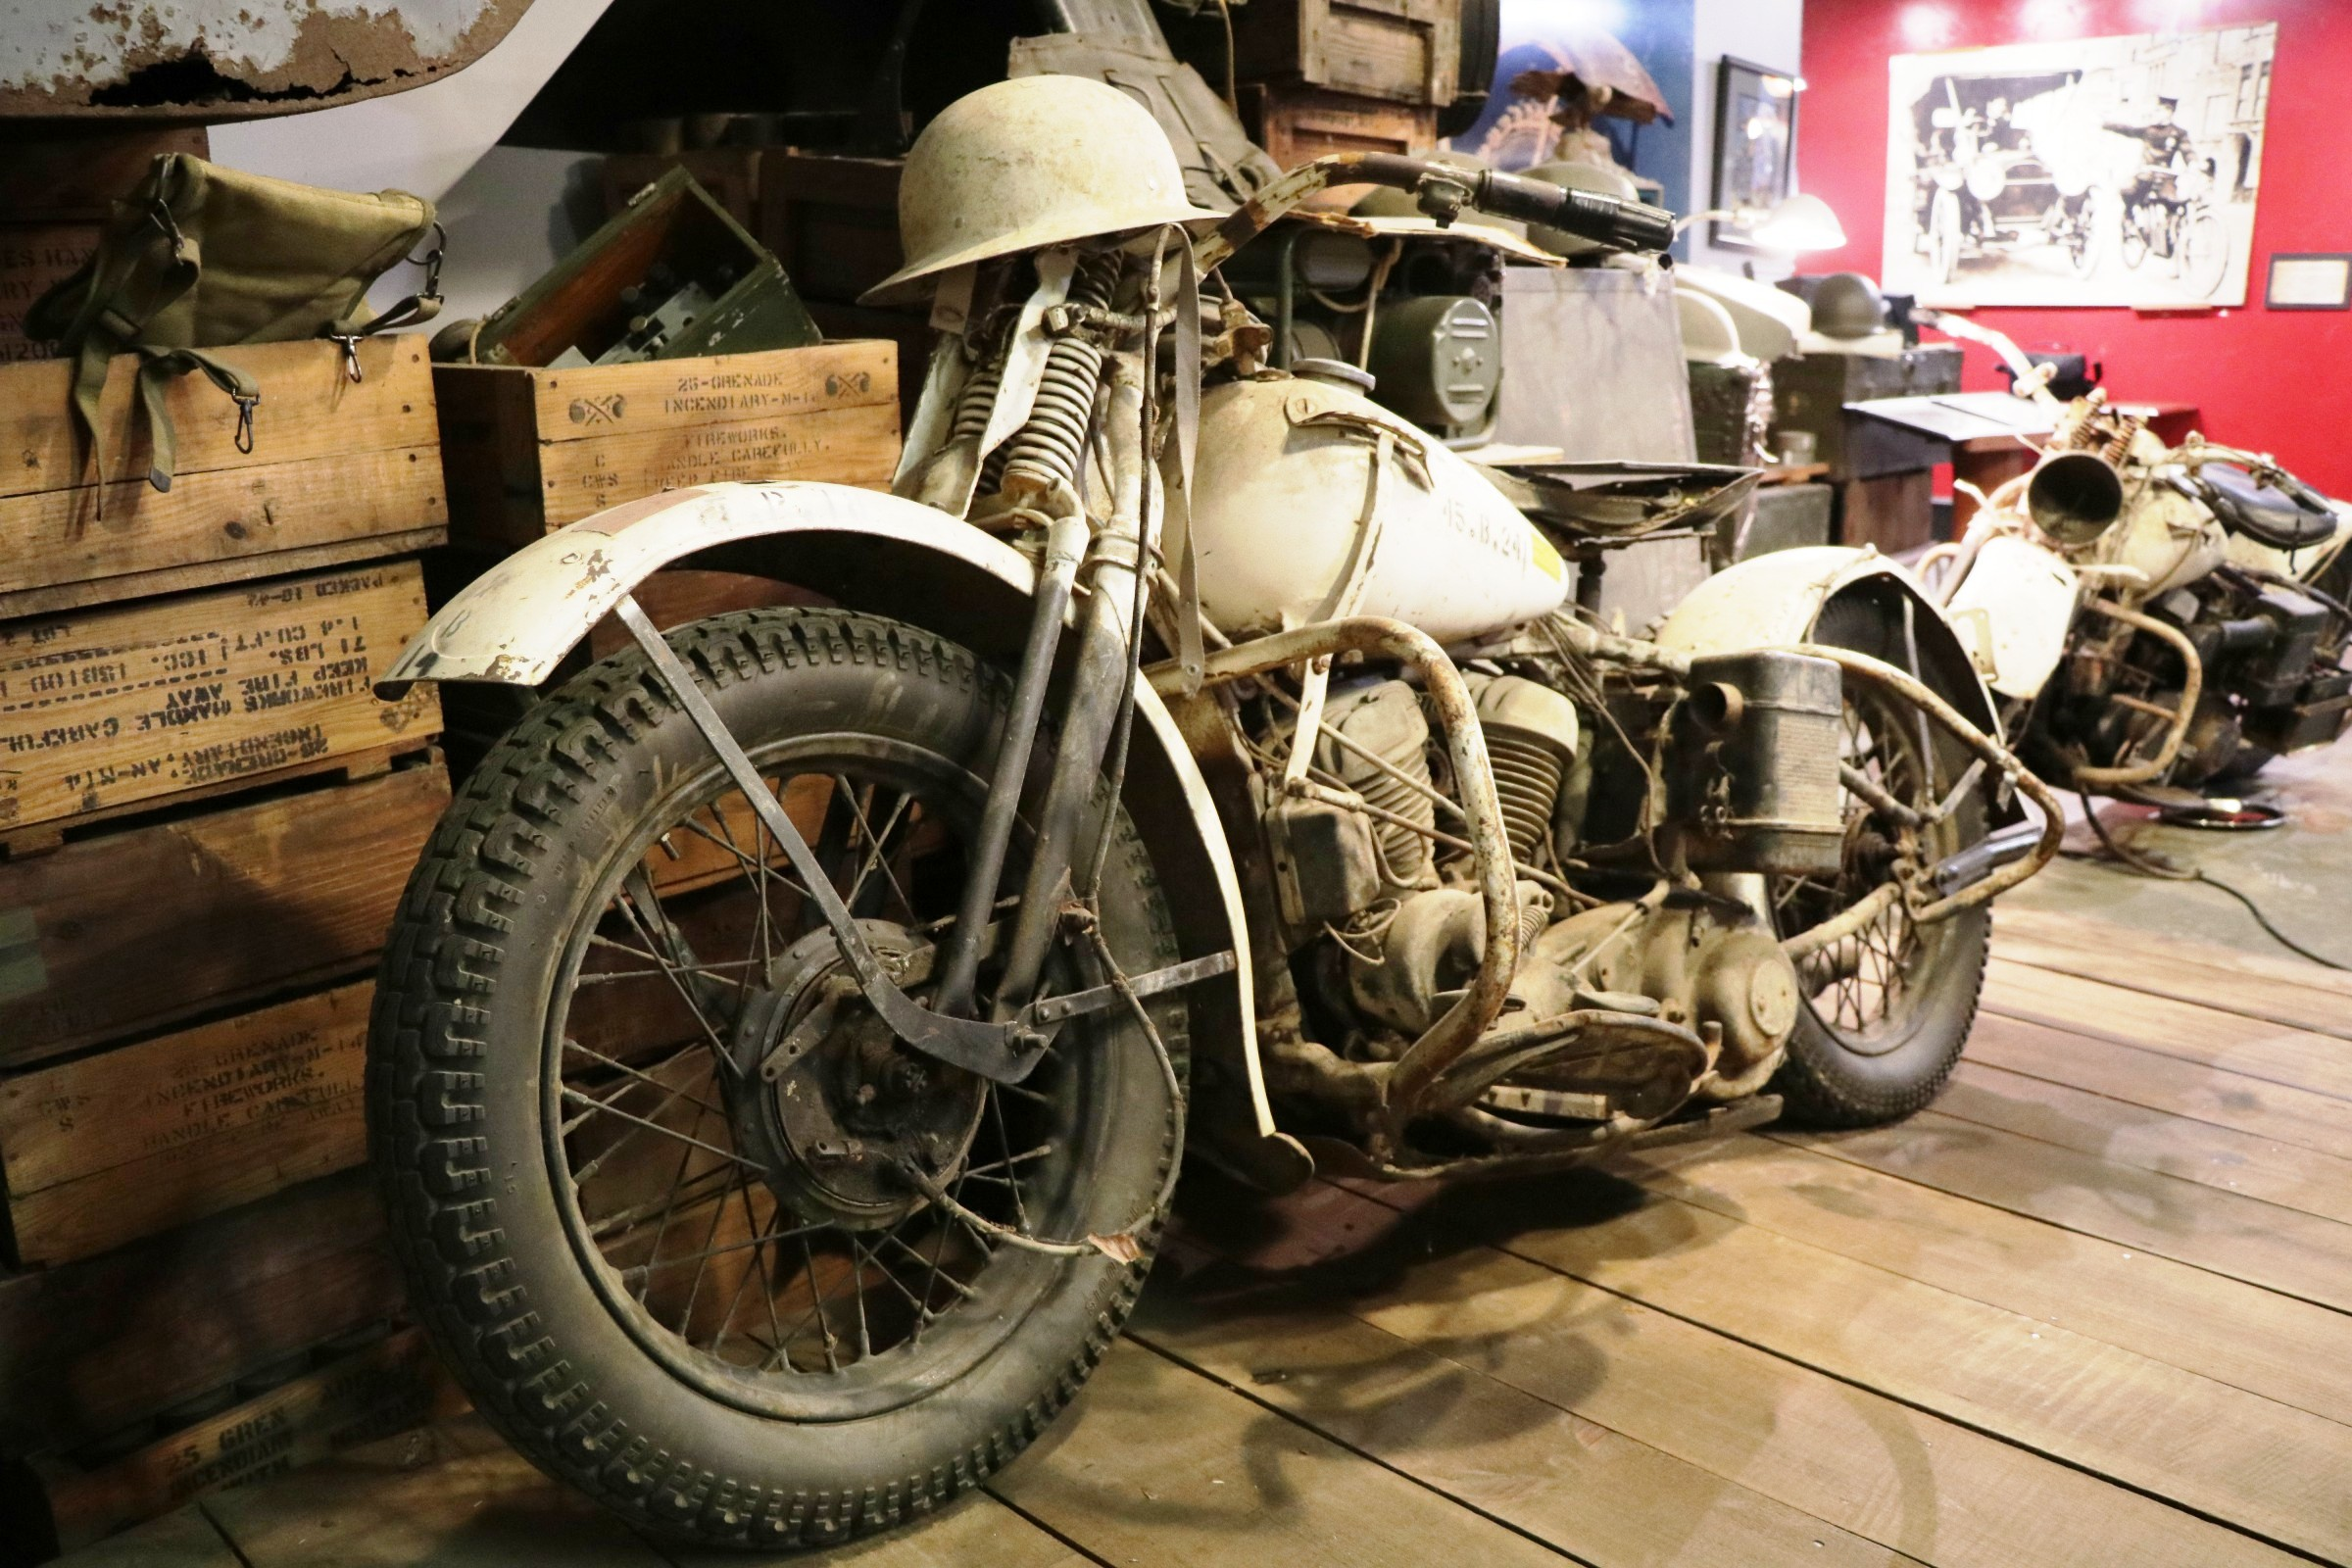 My five favorite motorcycles at Wheels Through Time Museum RevZilla